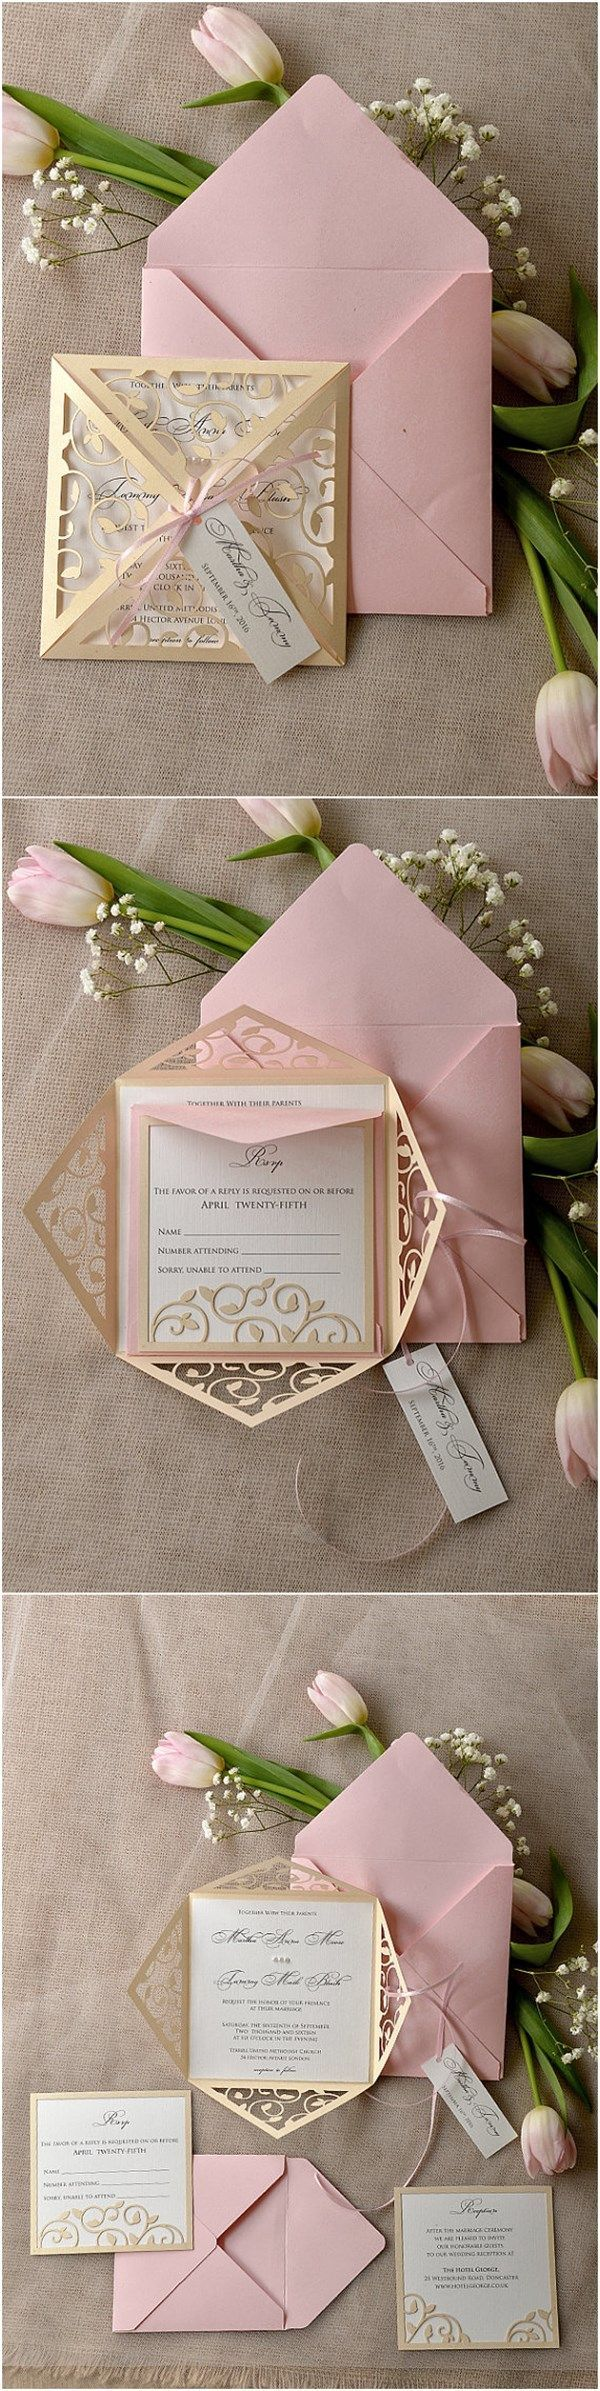 sister wedding invitation card wordings%0A    Our Absolutely Favorite Rustic Wedding Invitations